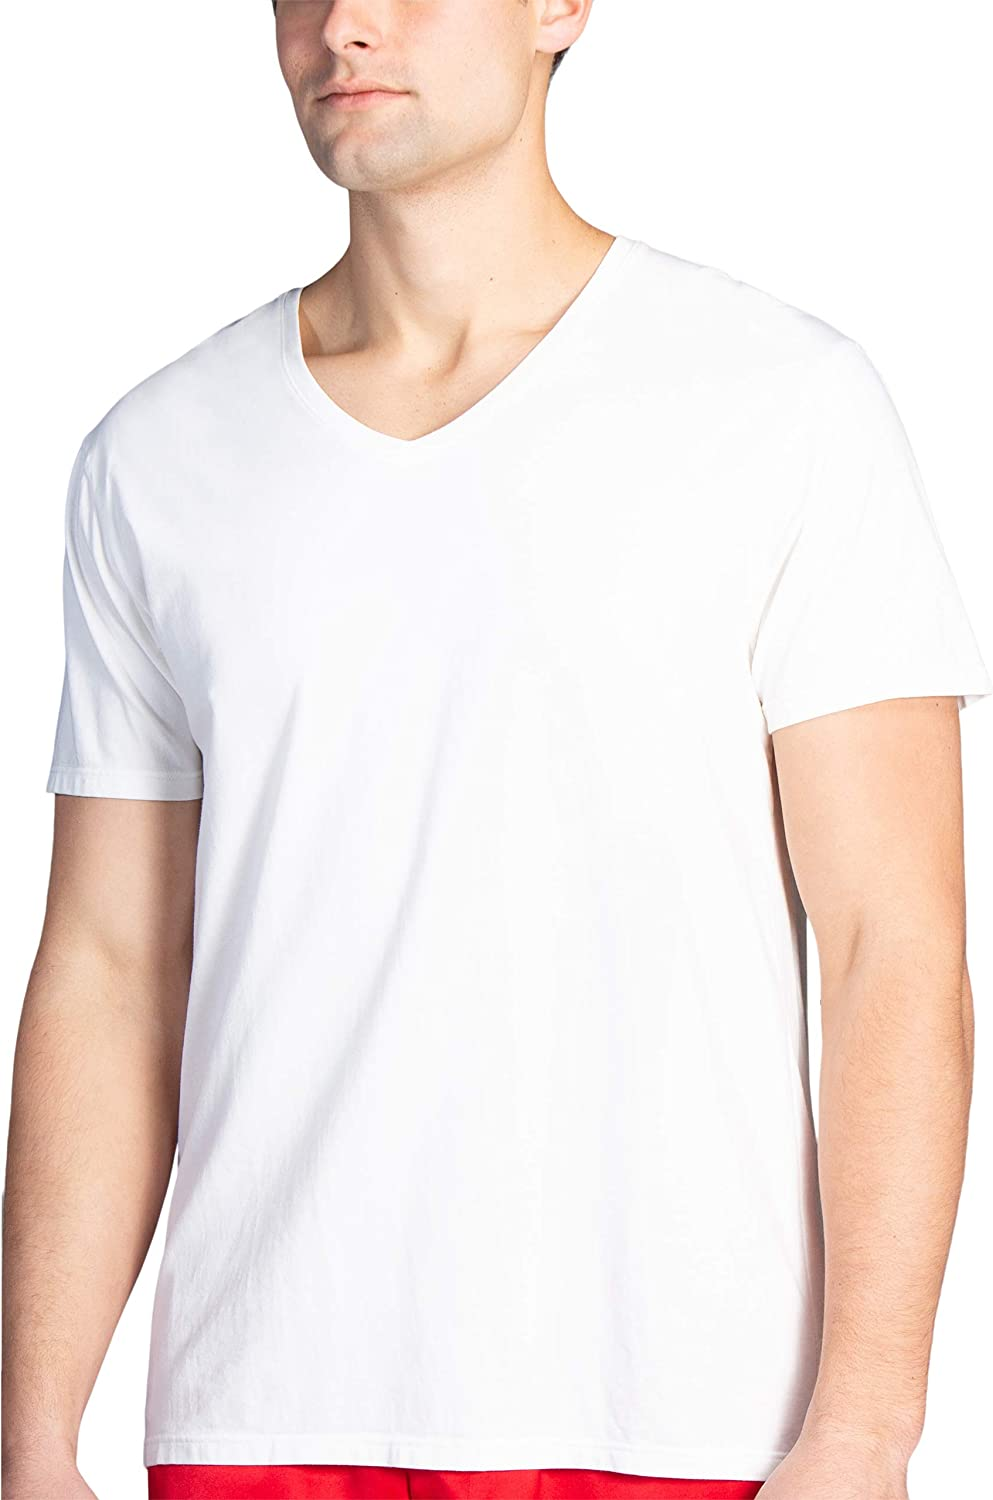 Fishers Finery Max 75% OFF Men's Classic Arlington Mall V-Neck Tucked Soft Keep Comfort Und